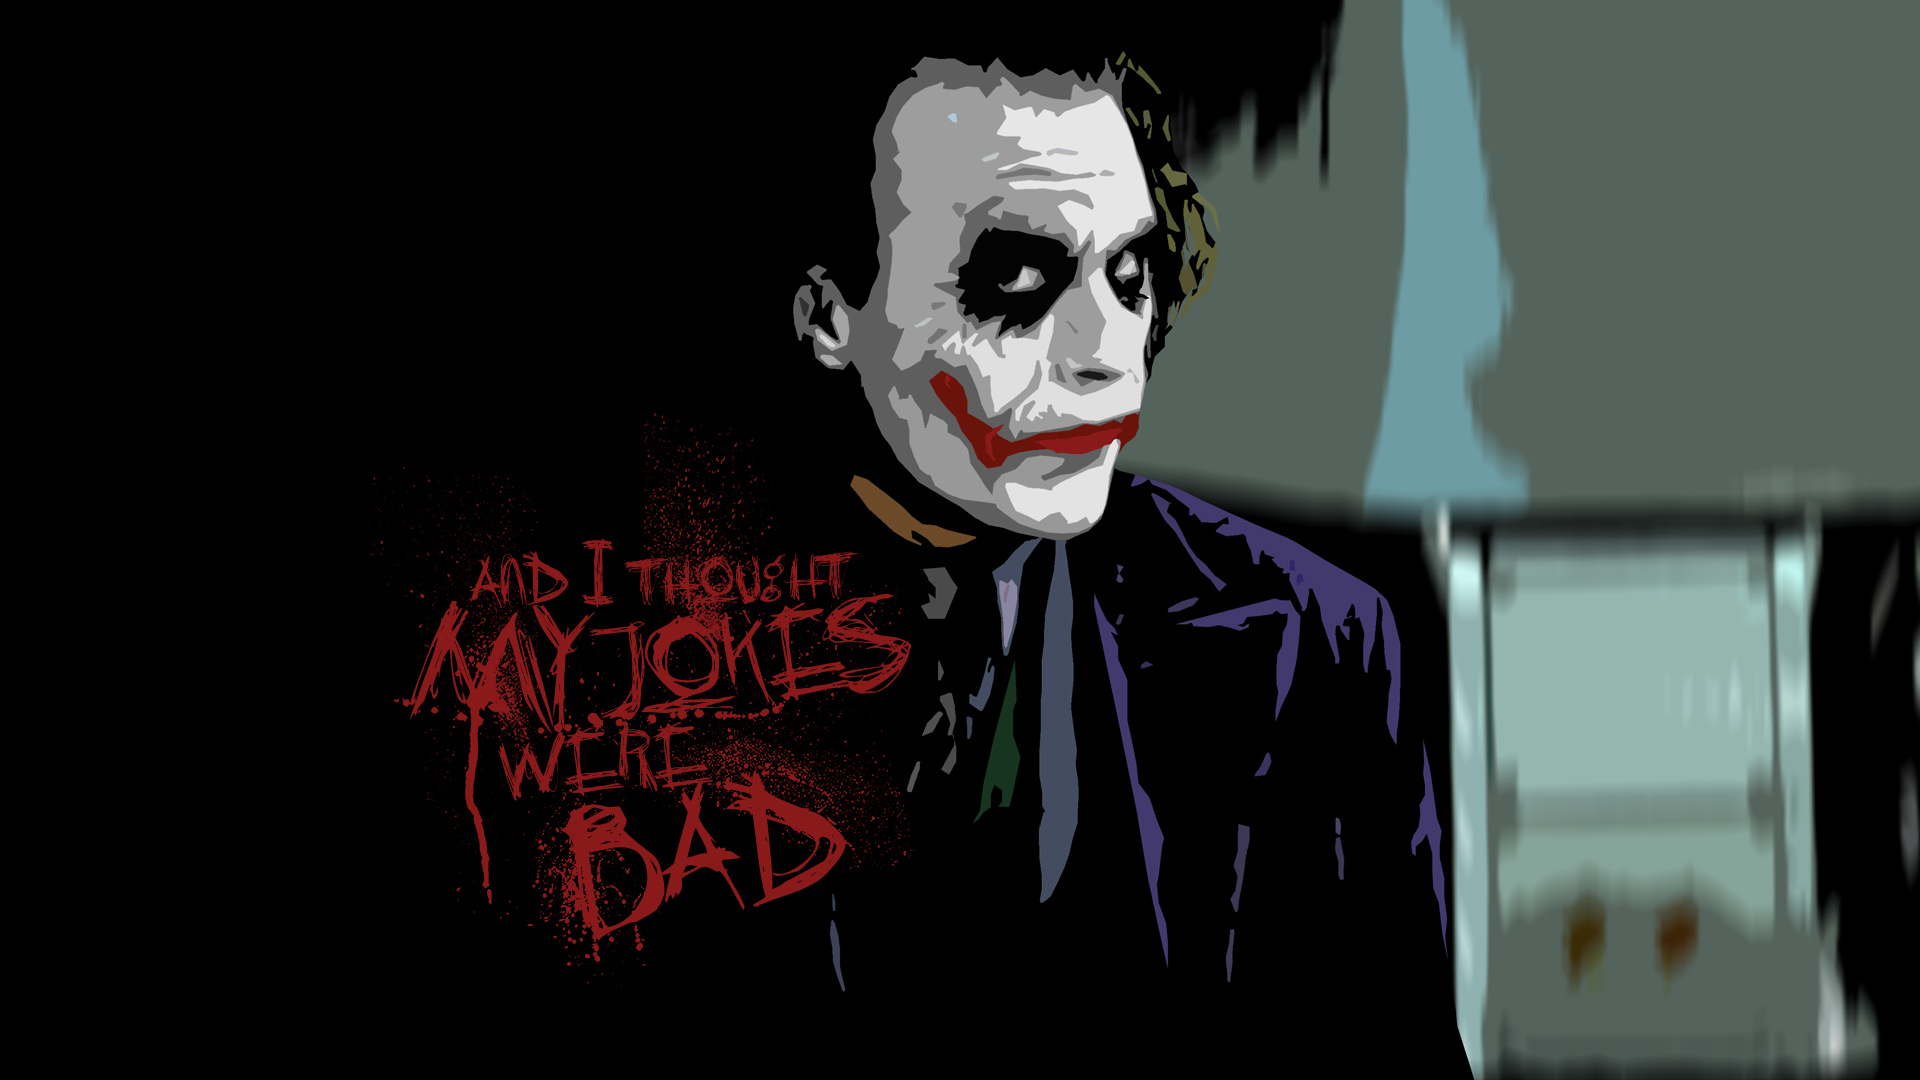 Joker Hd Wallpapers: A Tribute To The Joker